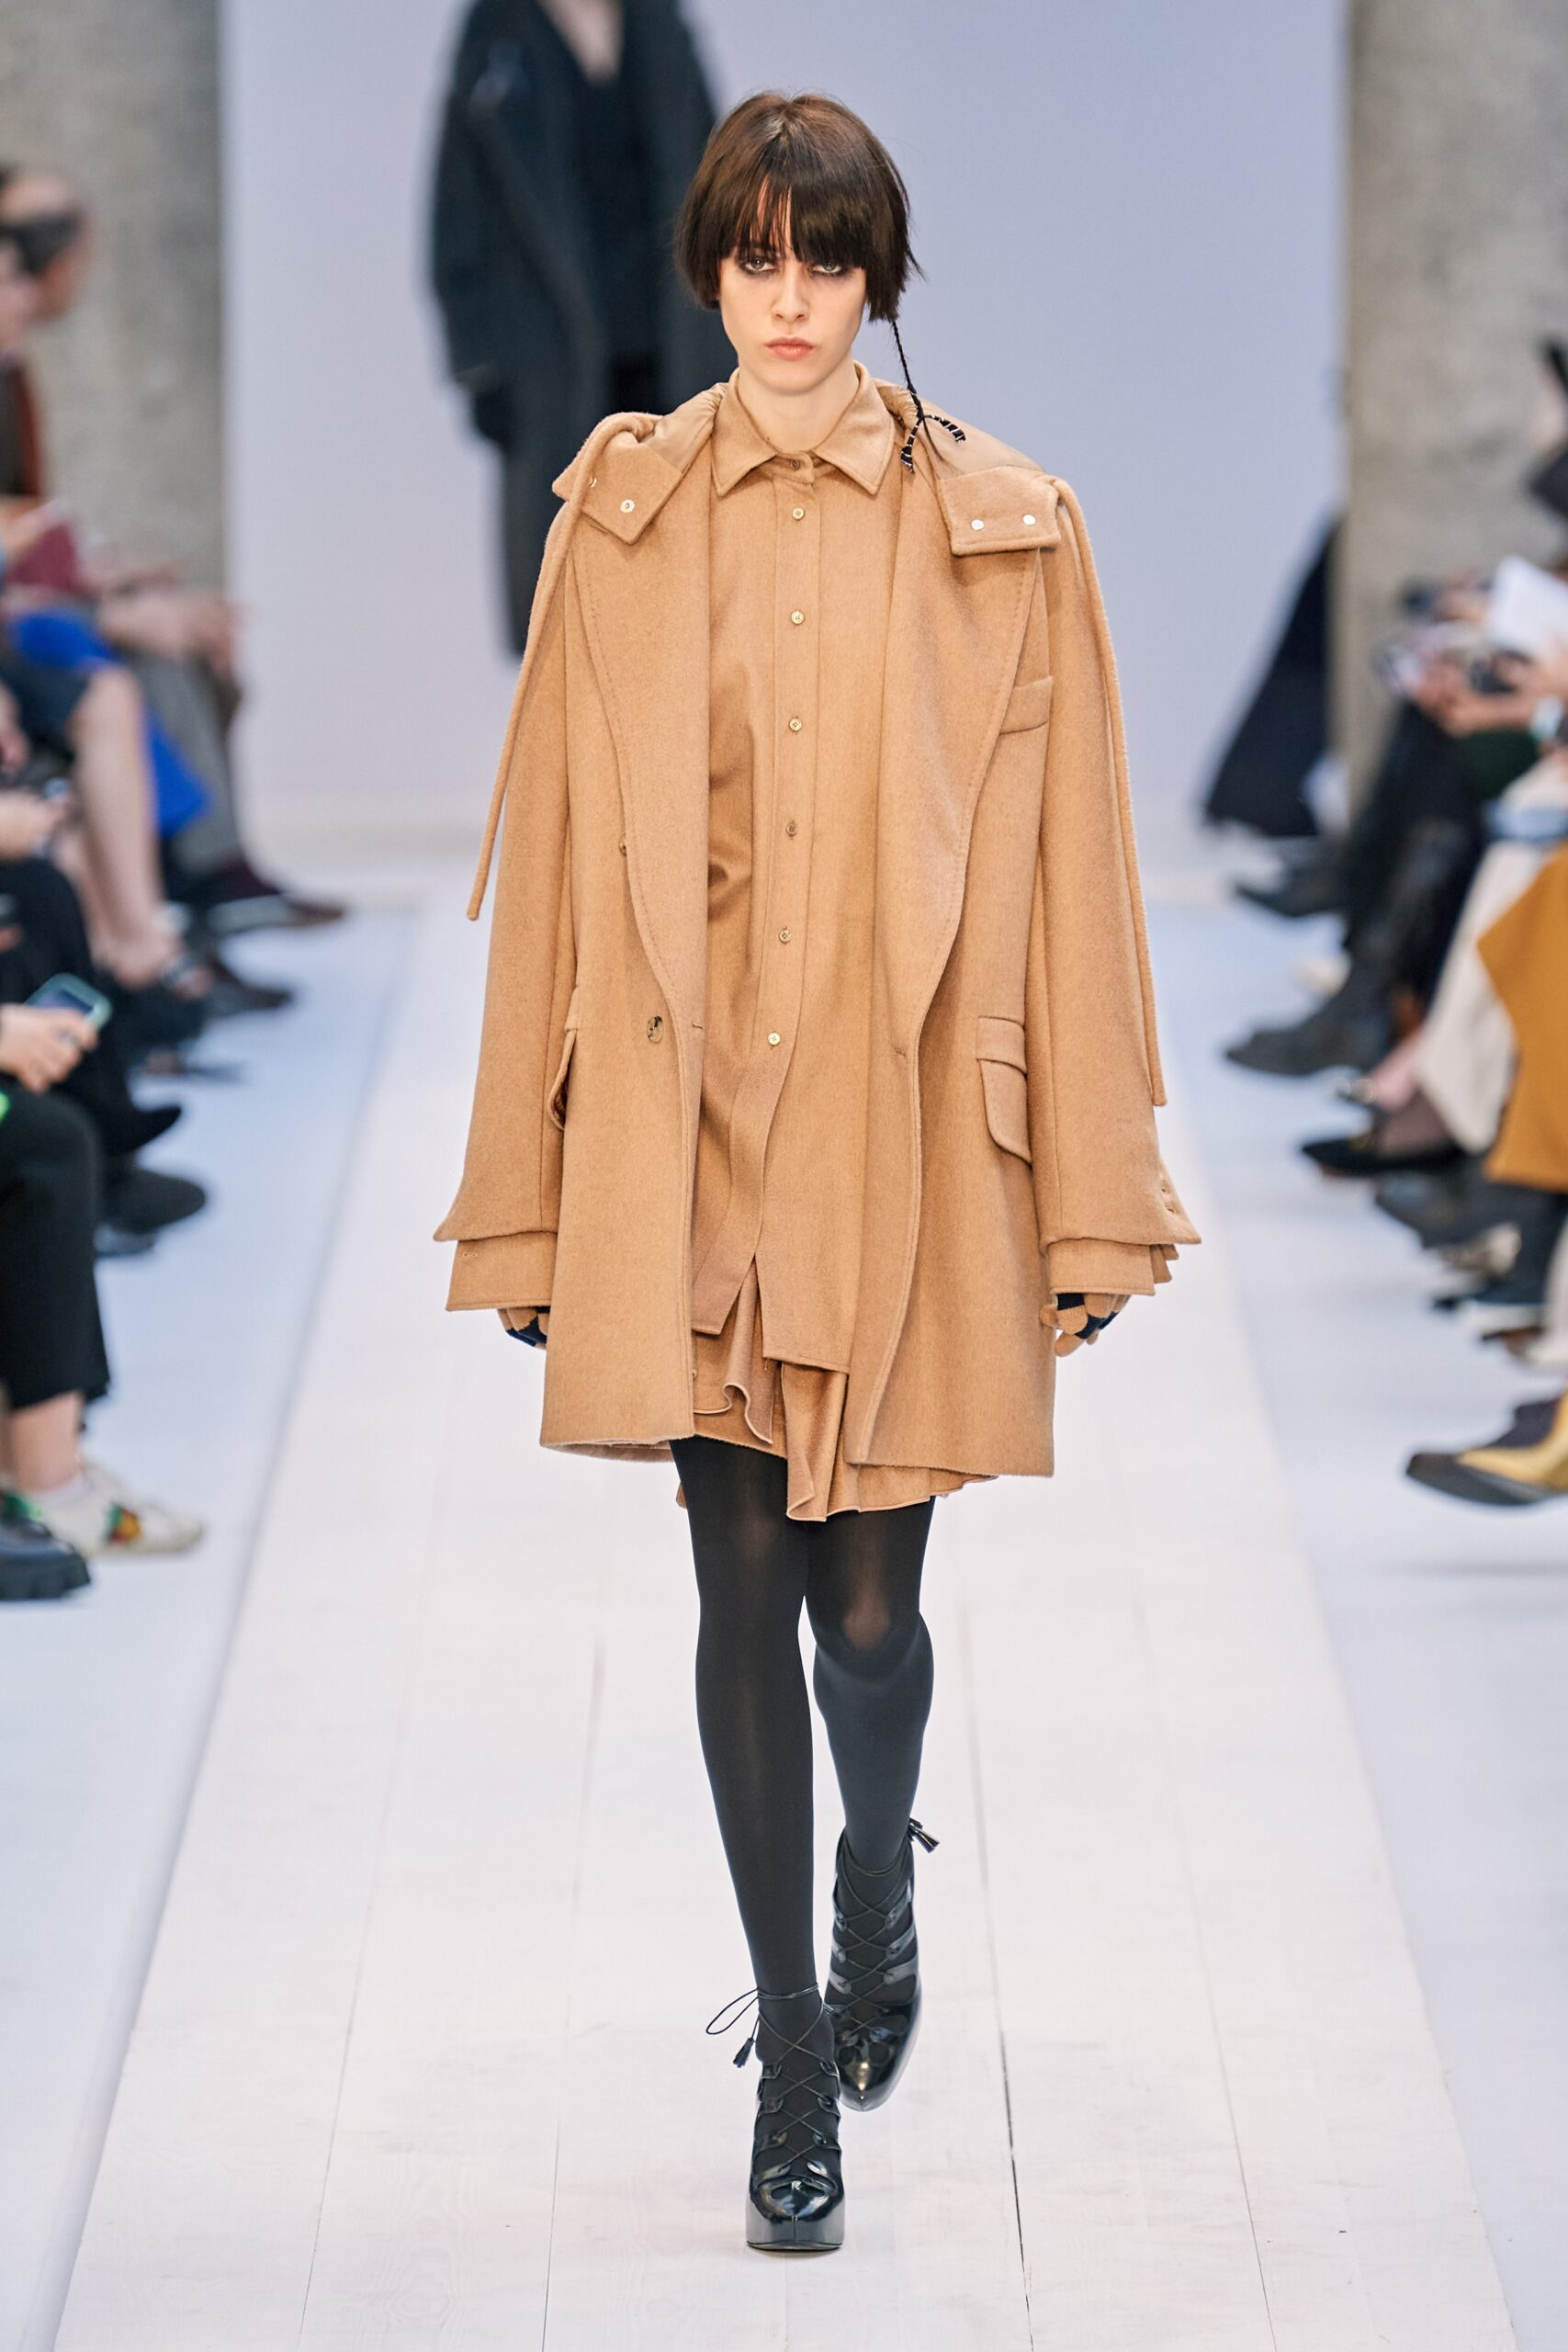 Max Mara Fall 2020 ready-to-wear